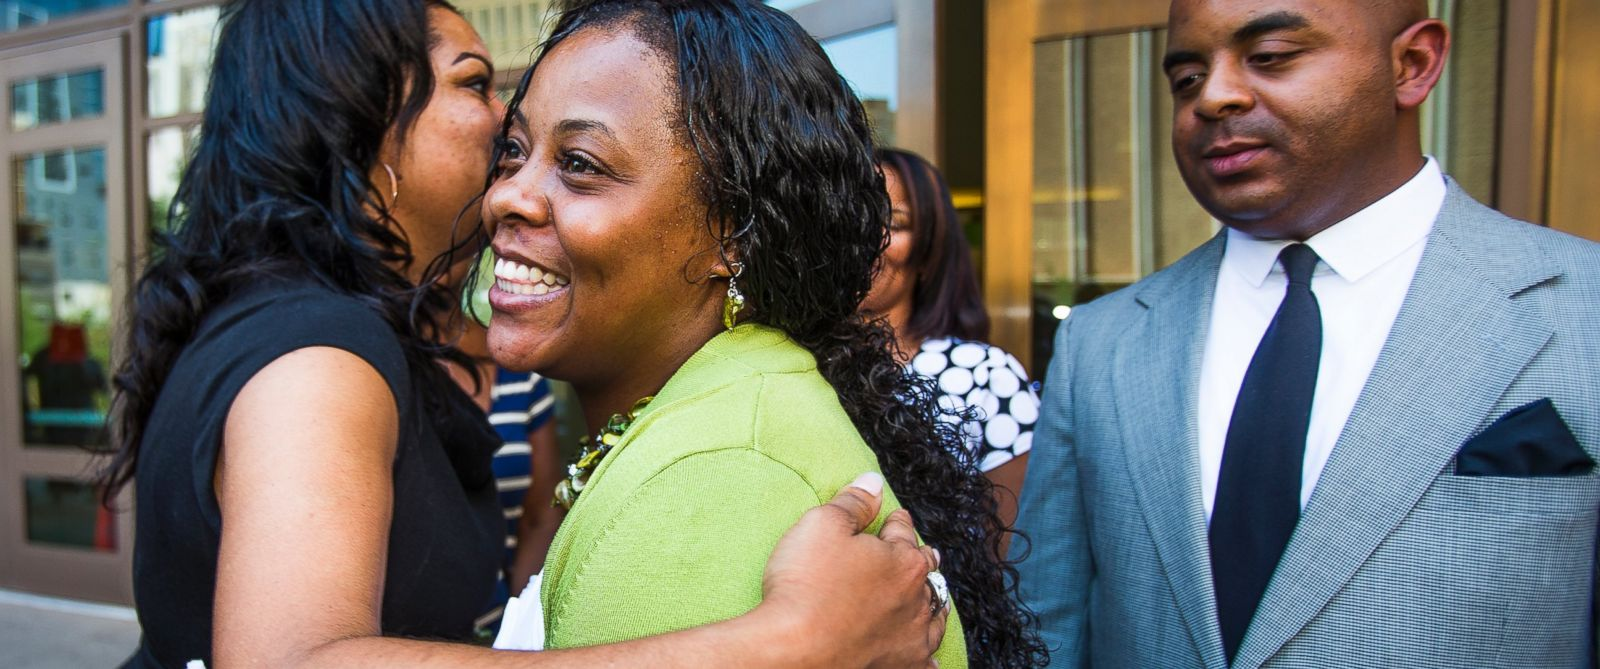 PHOTO: Shanesha Taylor is hugged as Rev. Jarrett Maupin looks on, outside Maricopa County Superior Court, July 18, 2014 in Phoenix.